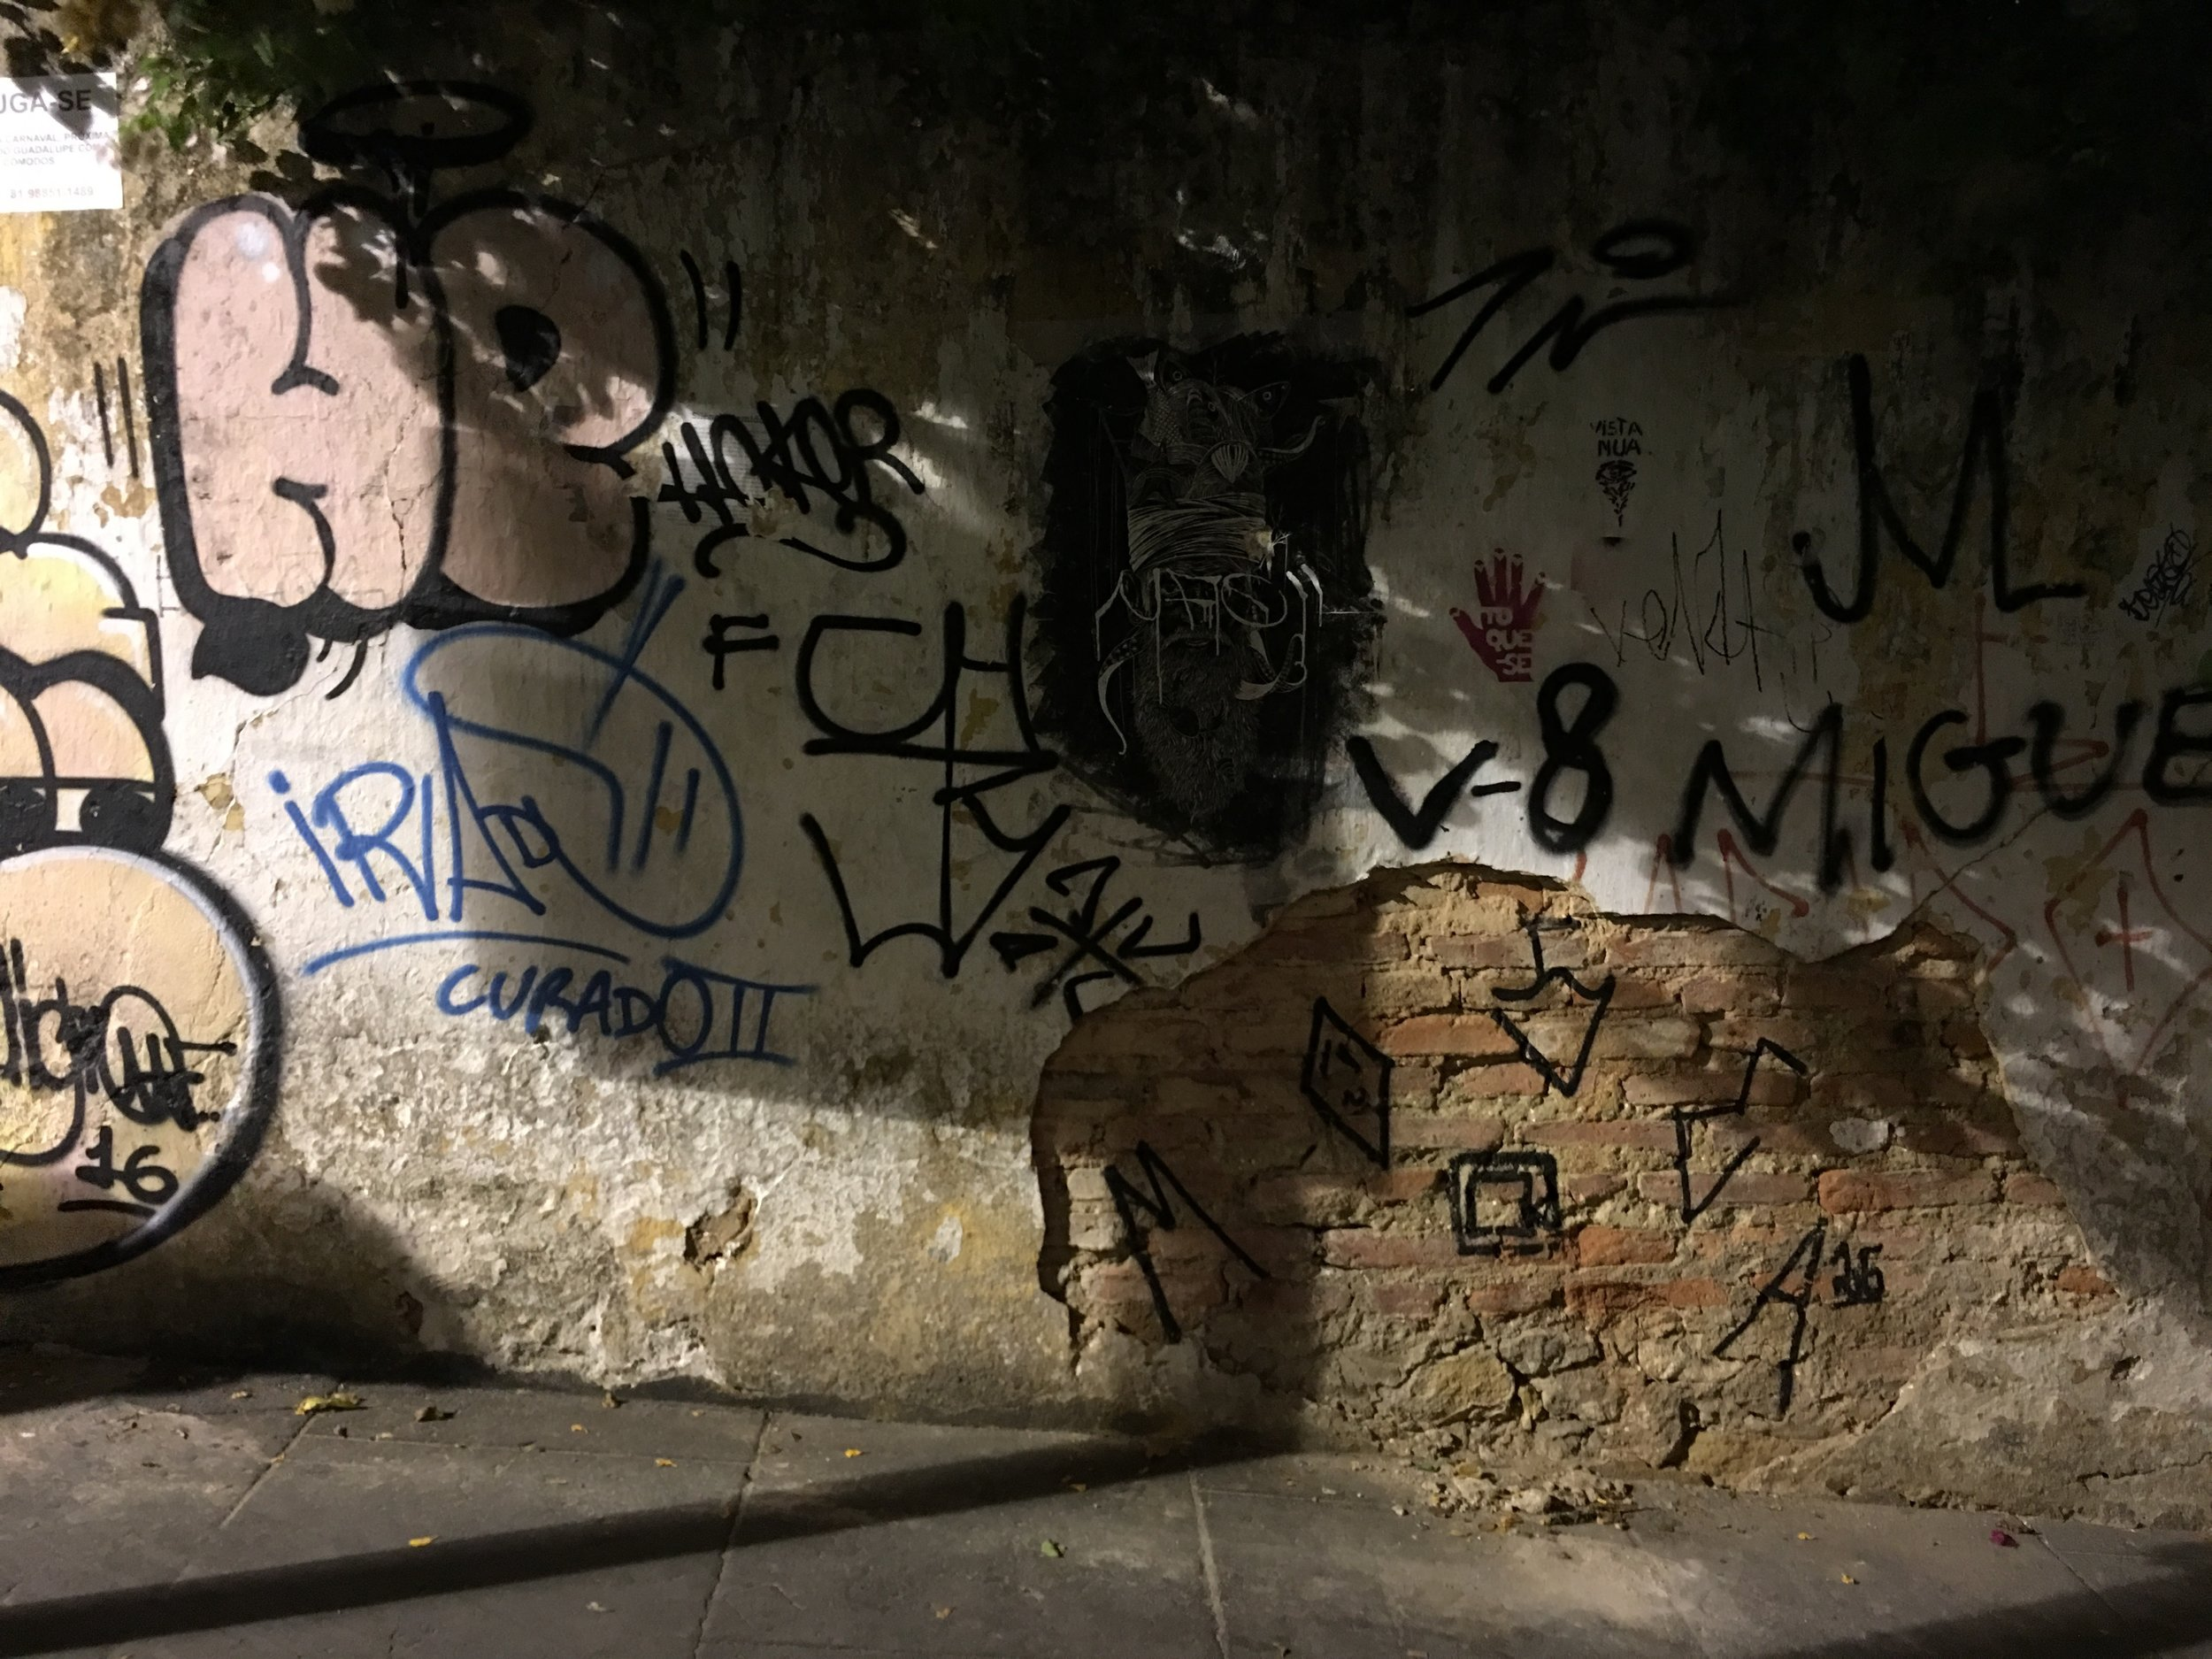 """In some cases, the Pixo would represent members of local Favelas (slums). In this example, we can see a signature from someone named Miguel, who resides in the Favela """"v-8""""."""